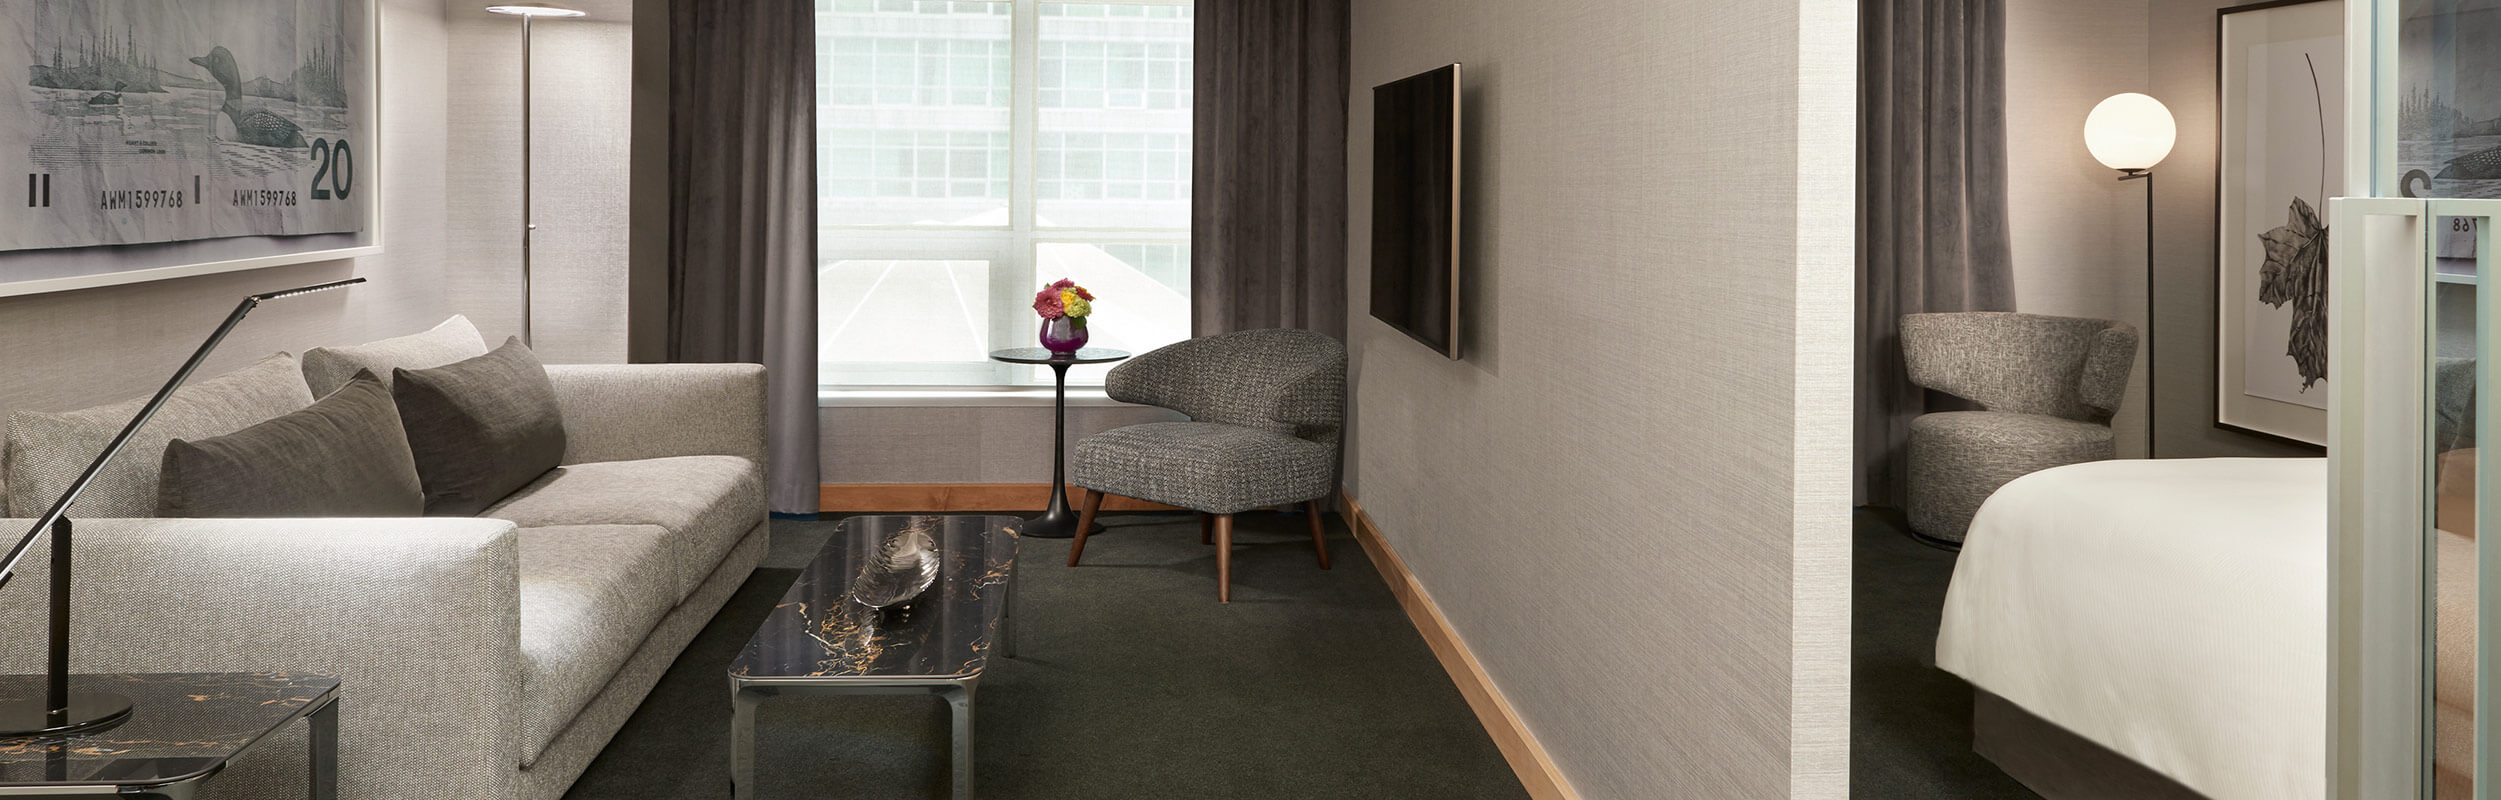 SoHo Hotel renovated premier executive suite